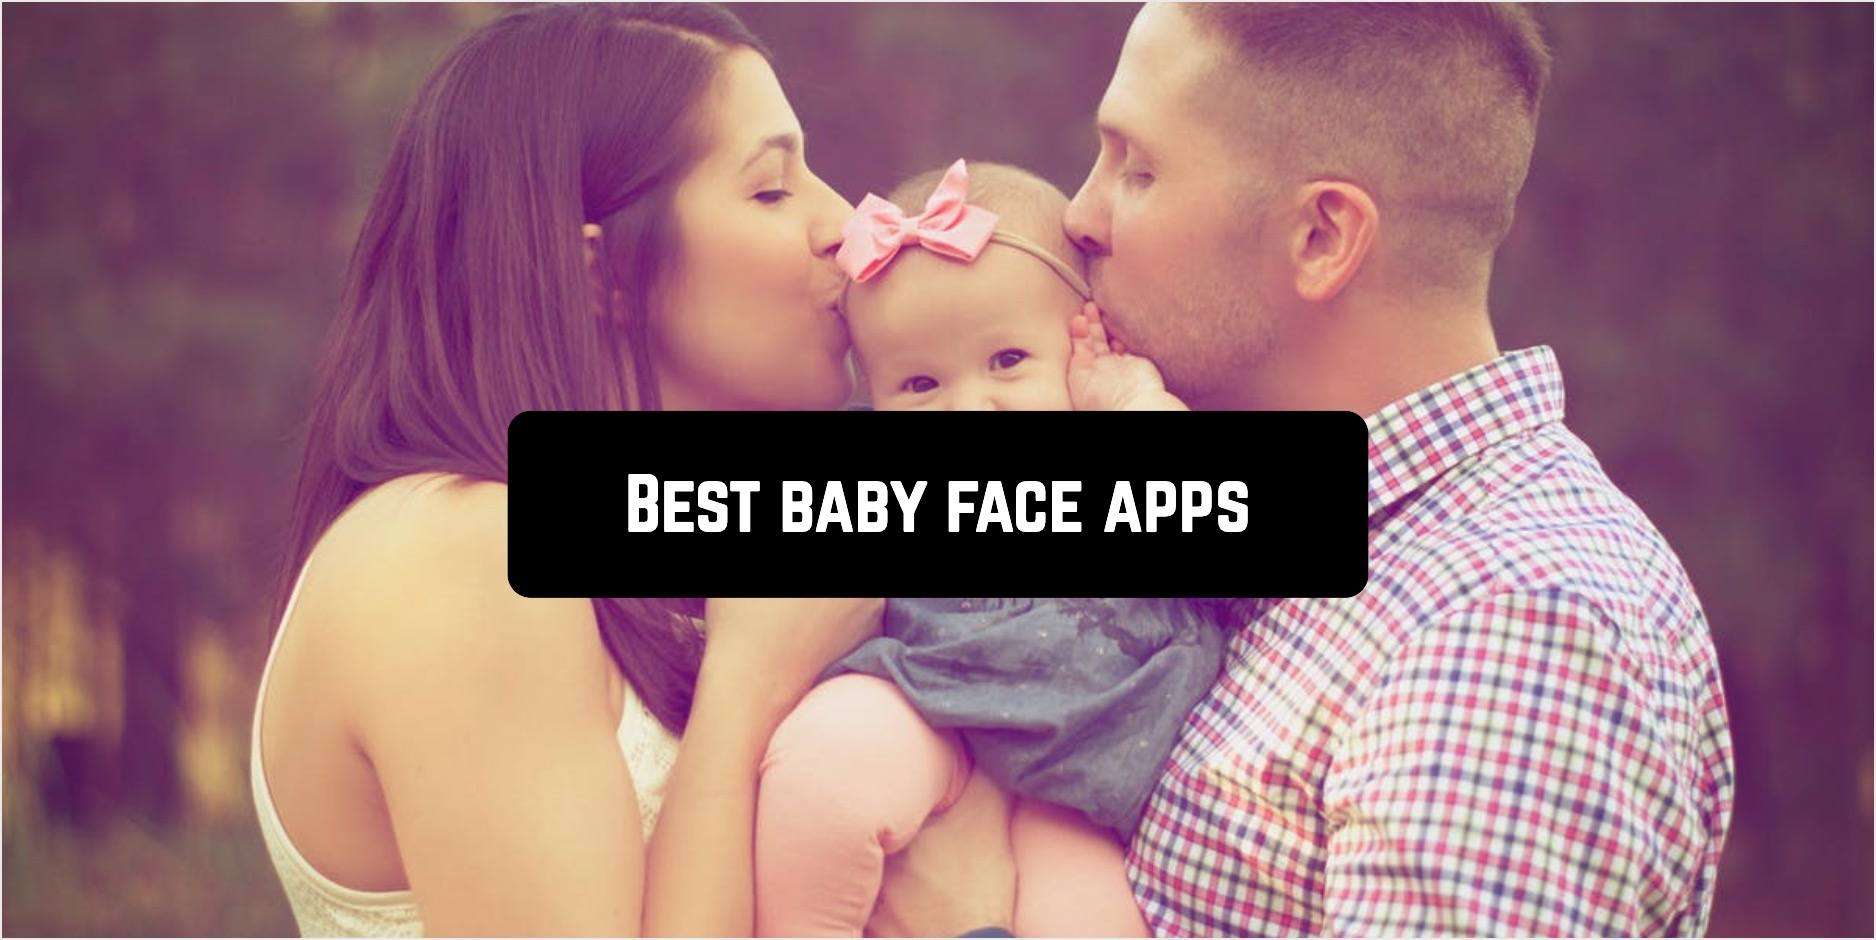 Best baby face apps